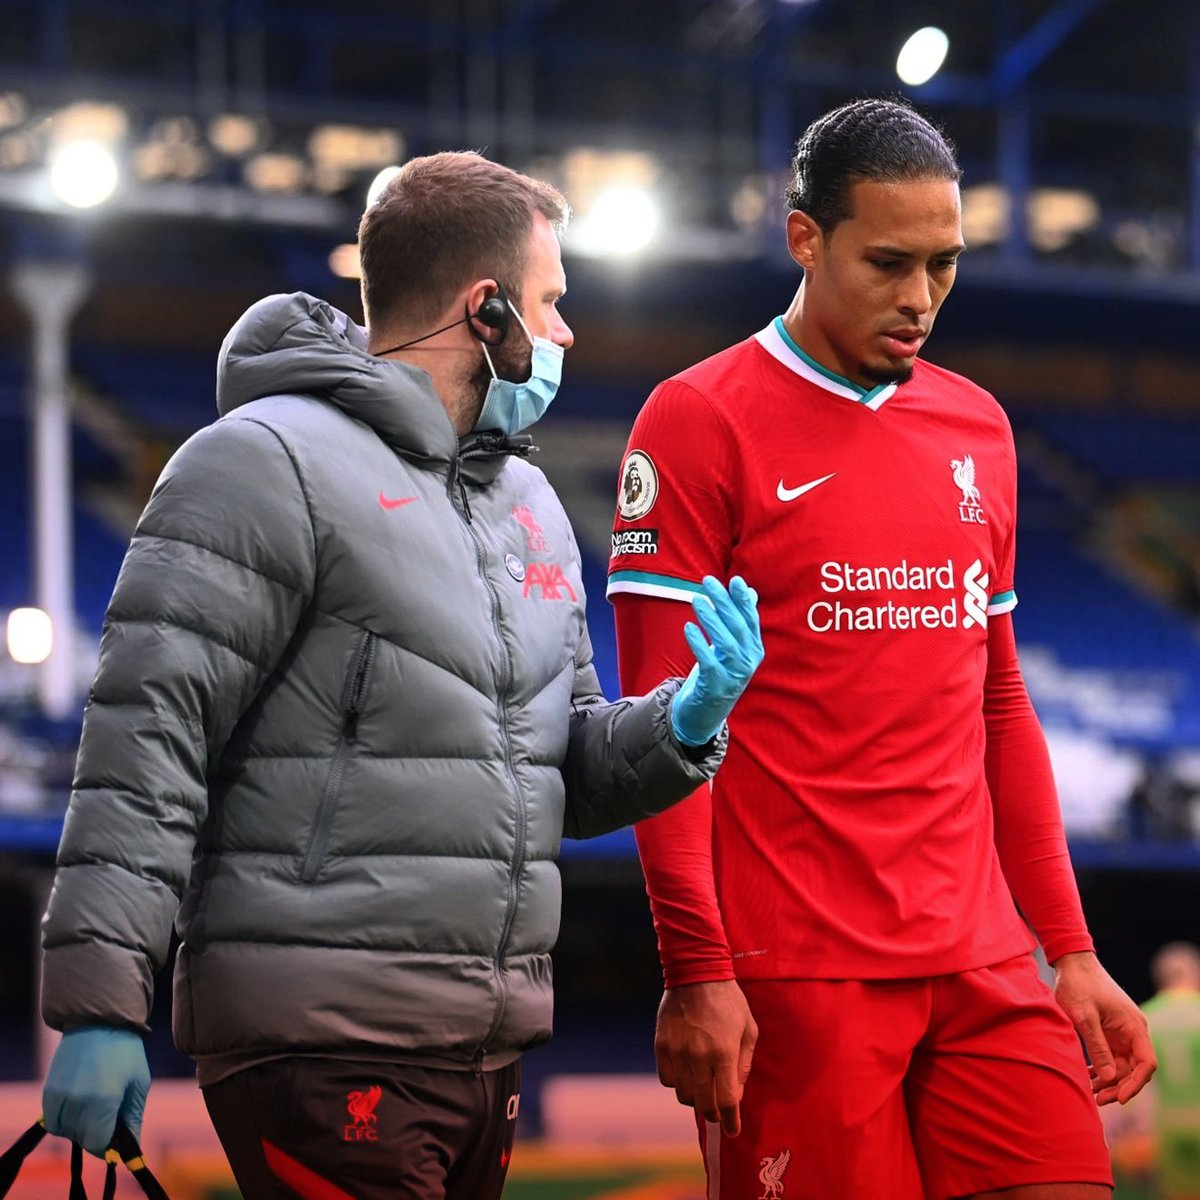 Liverpool are continuing to push for answers over the incident which has wrecked Virgil van Dijk's season after receiving contradictory explanations of how the match officials dealt with Jordan Pickford's challenge. #awlfc [@_pauljoyce]